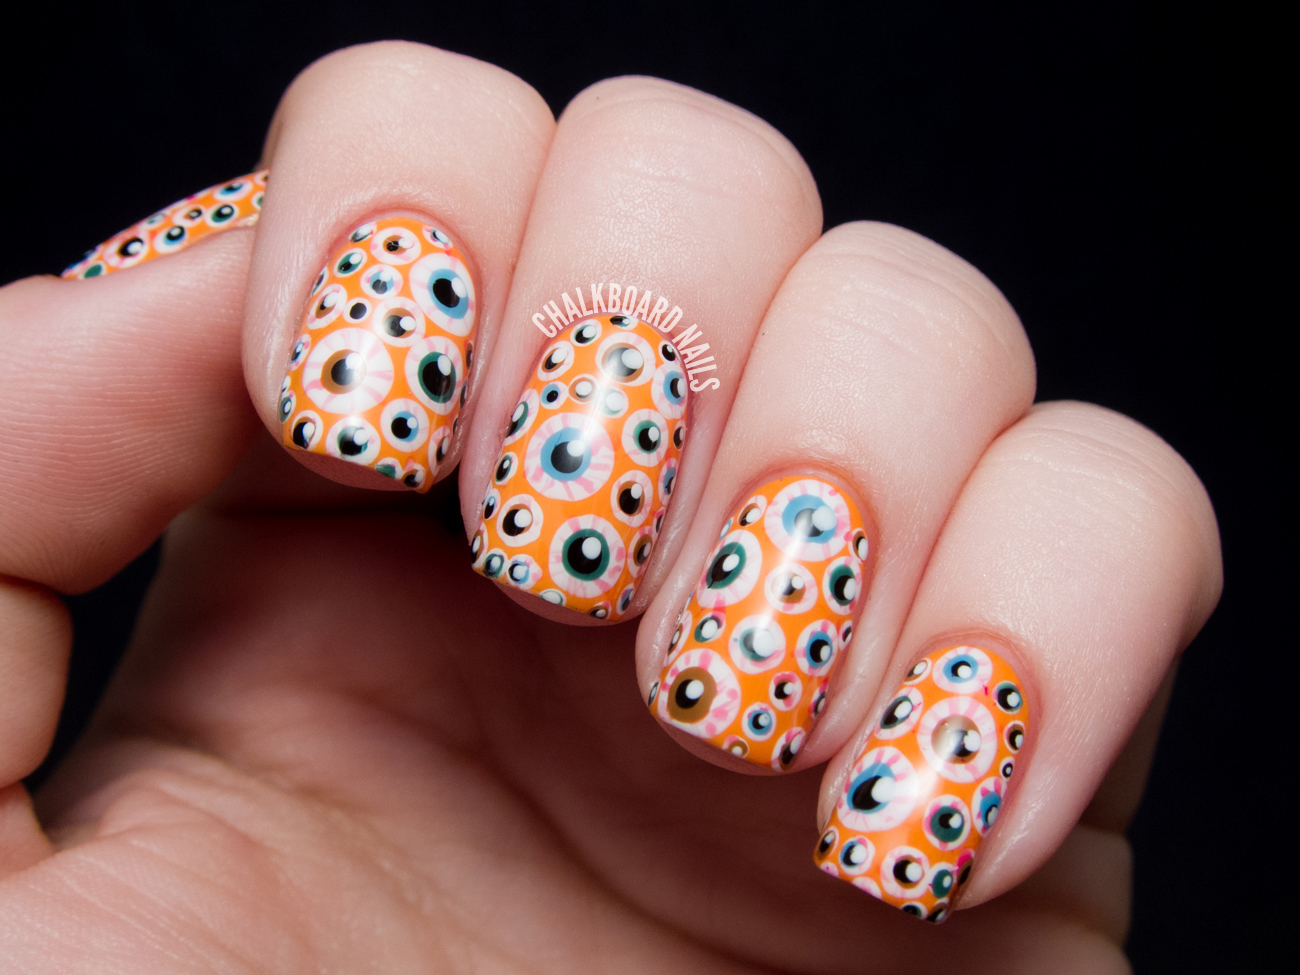 Over the top eyeball nails halloween nail art chalkboard nails i chose to go with an orange base this year and be a little more on the nose with the halloween theming the base i used is opi in my back prinsesfo Choice Image